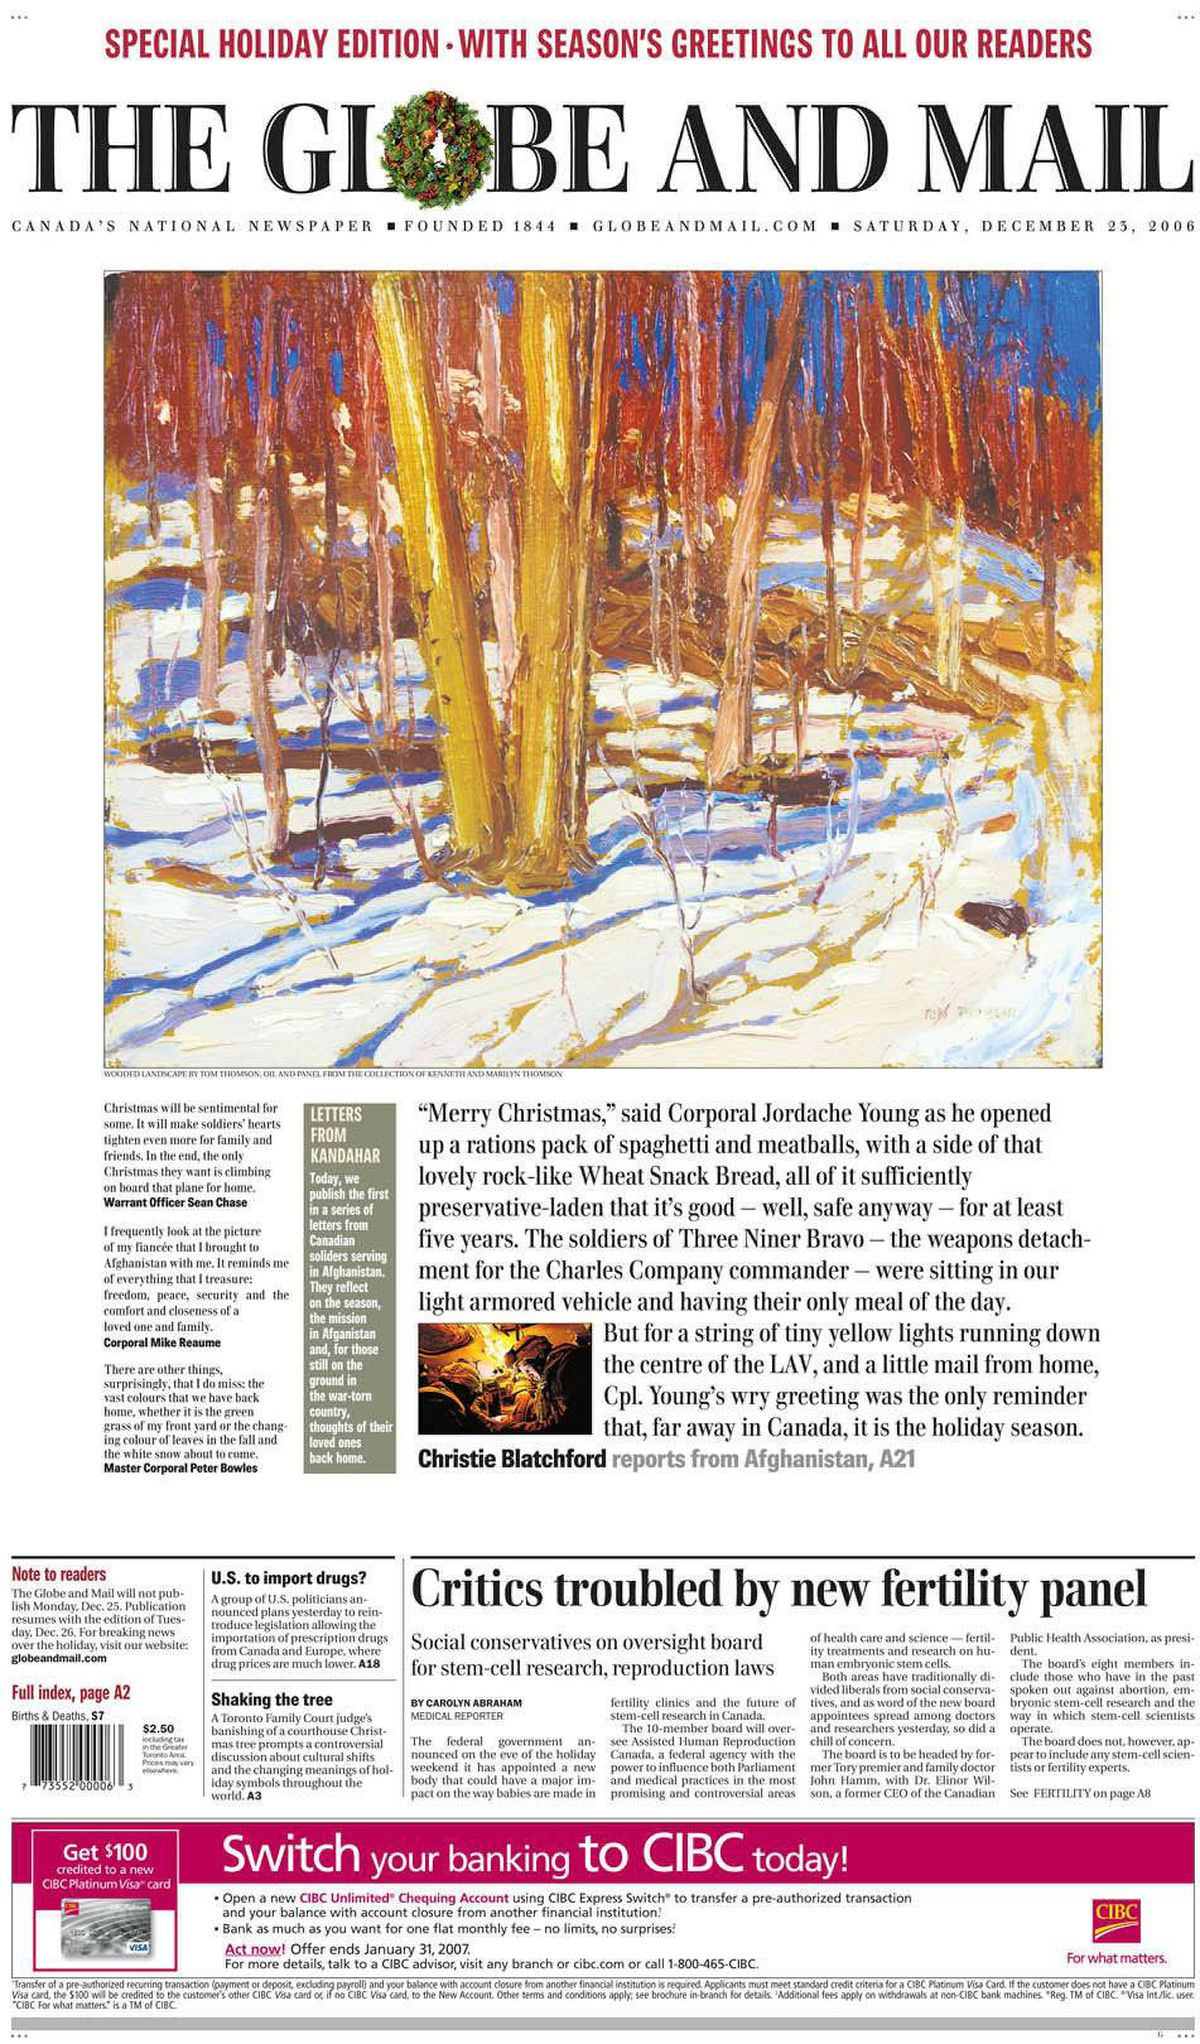 Cover of The Globe and Mail, Dec. 23, 2006